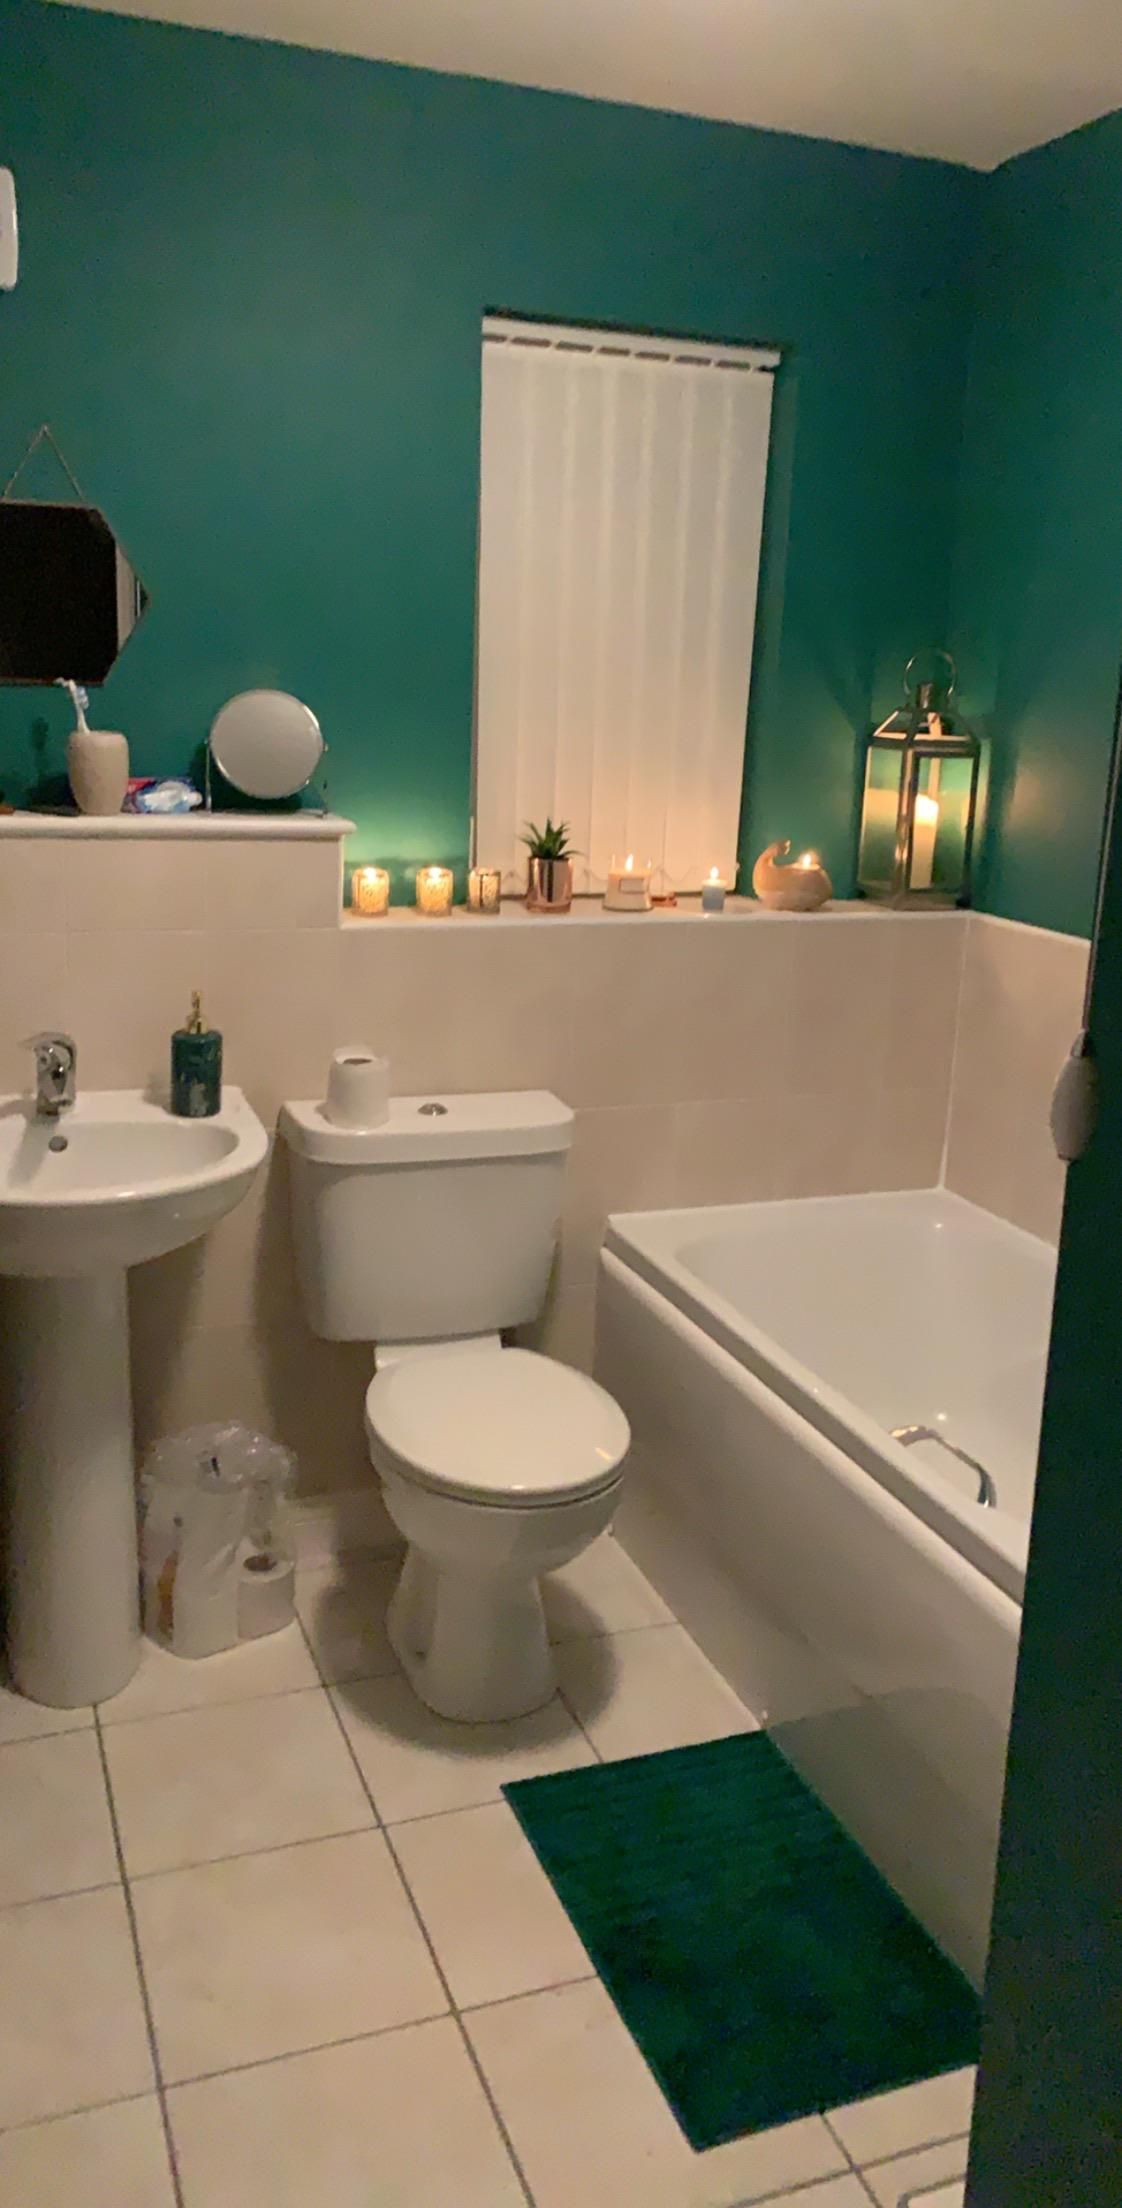 Painted My Bathroom Last Night Interior Living Space Design Concept Furniture Home Decor Aesthetic Amazing Unique Man Room Home Modern House Design